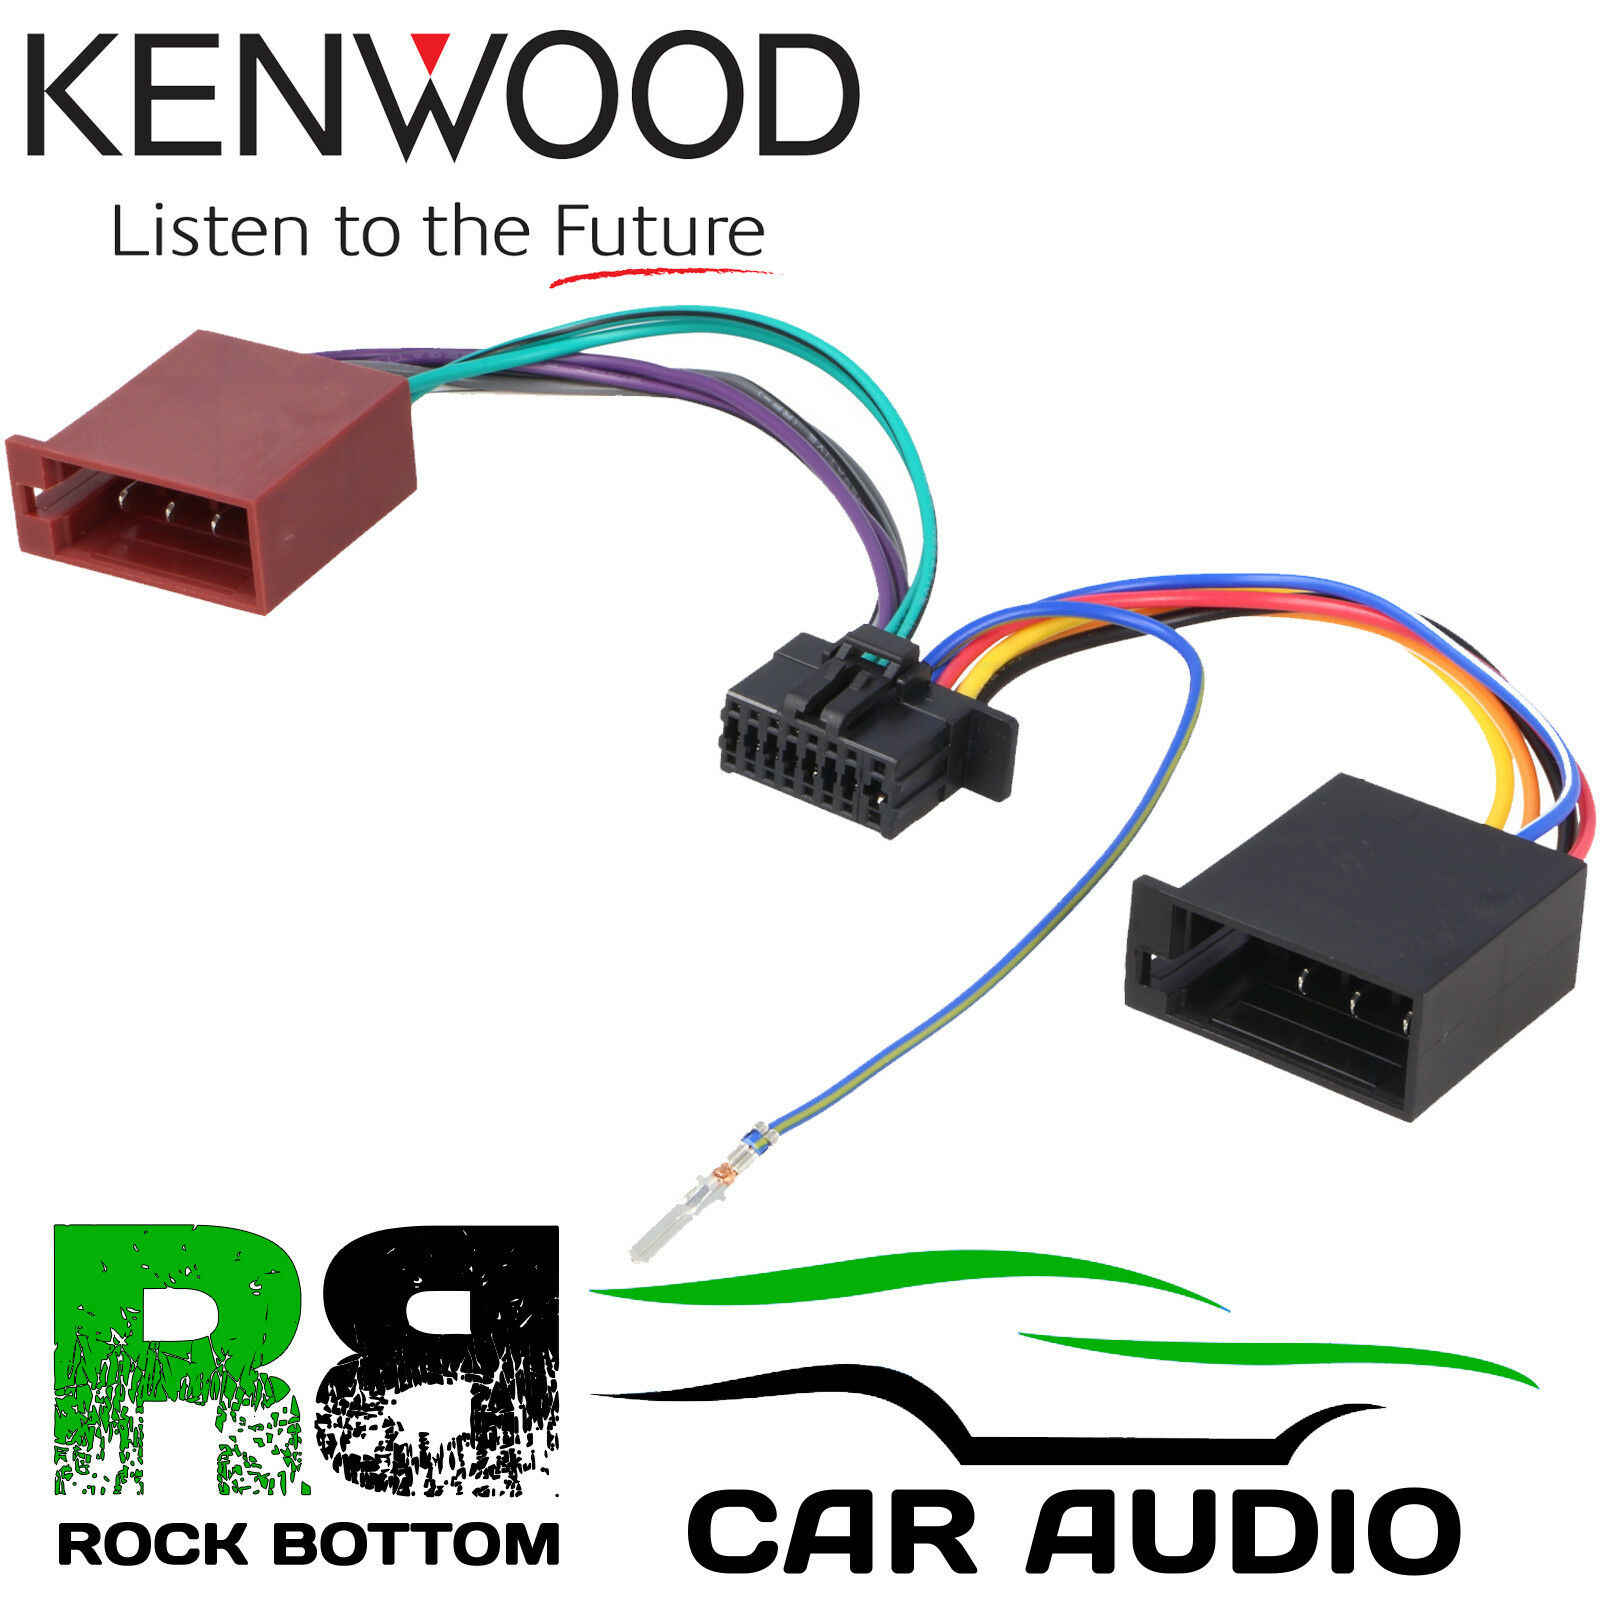 Kenwood Kdc Bt510u Car Radio Stereo 16 Pin Wiring Harness Loom Iso 1 Of 1free Shipping